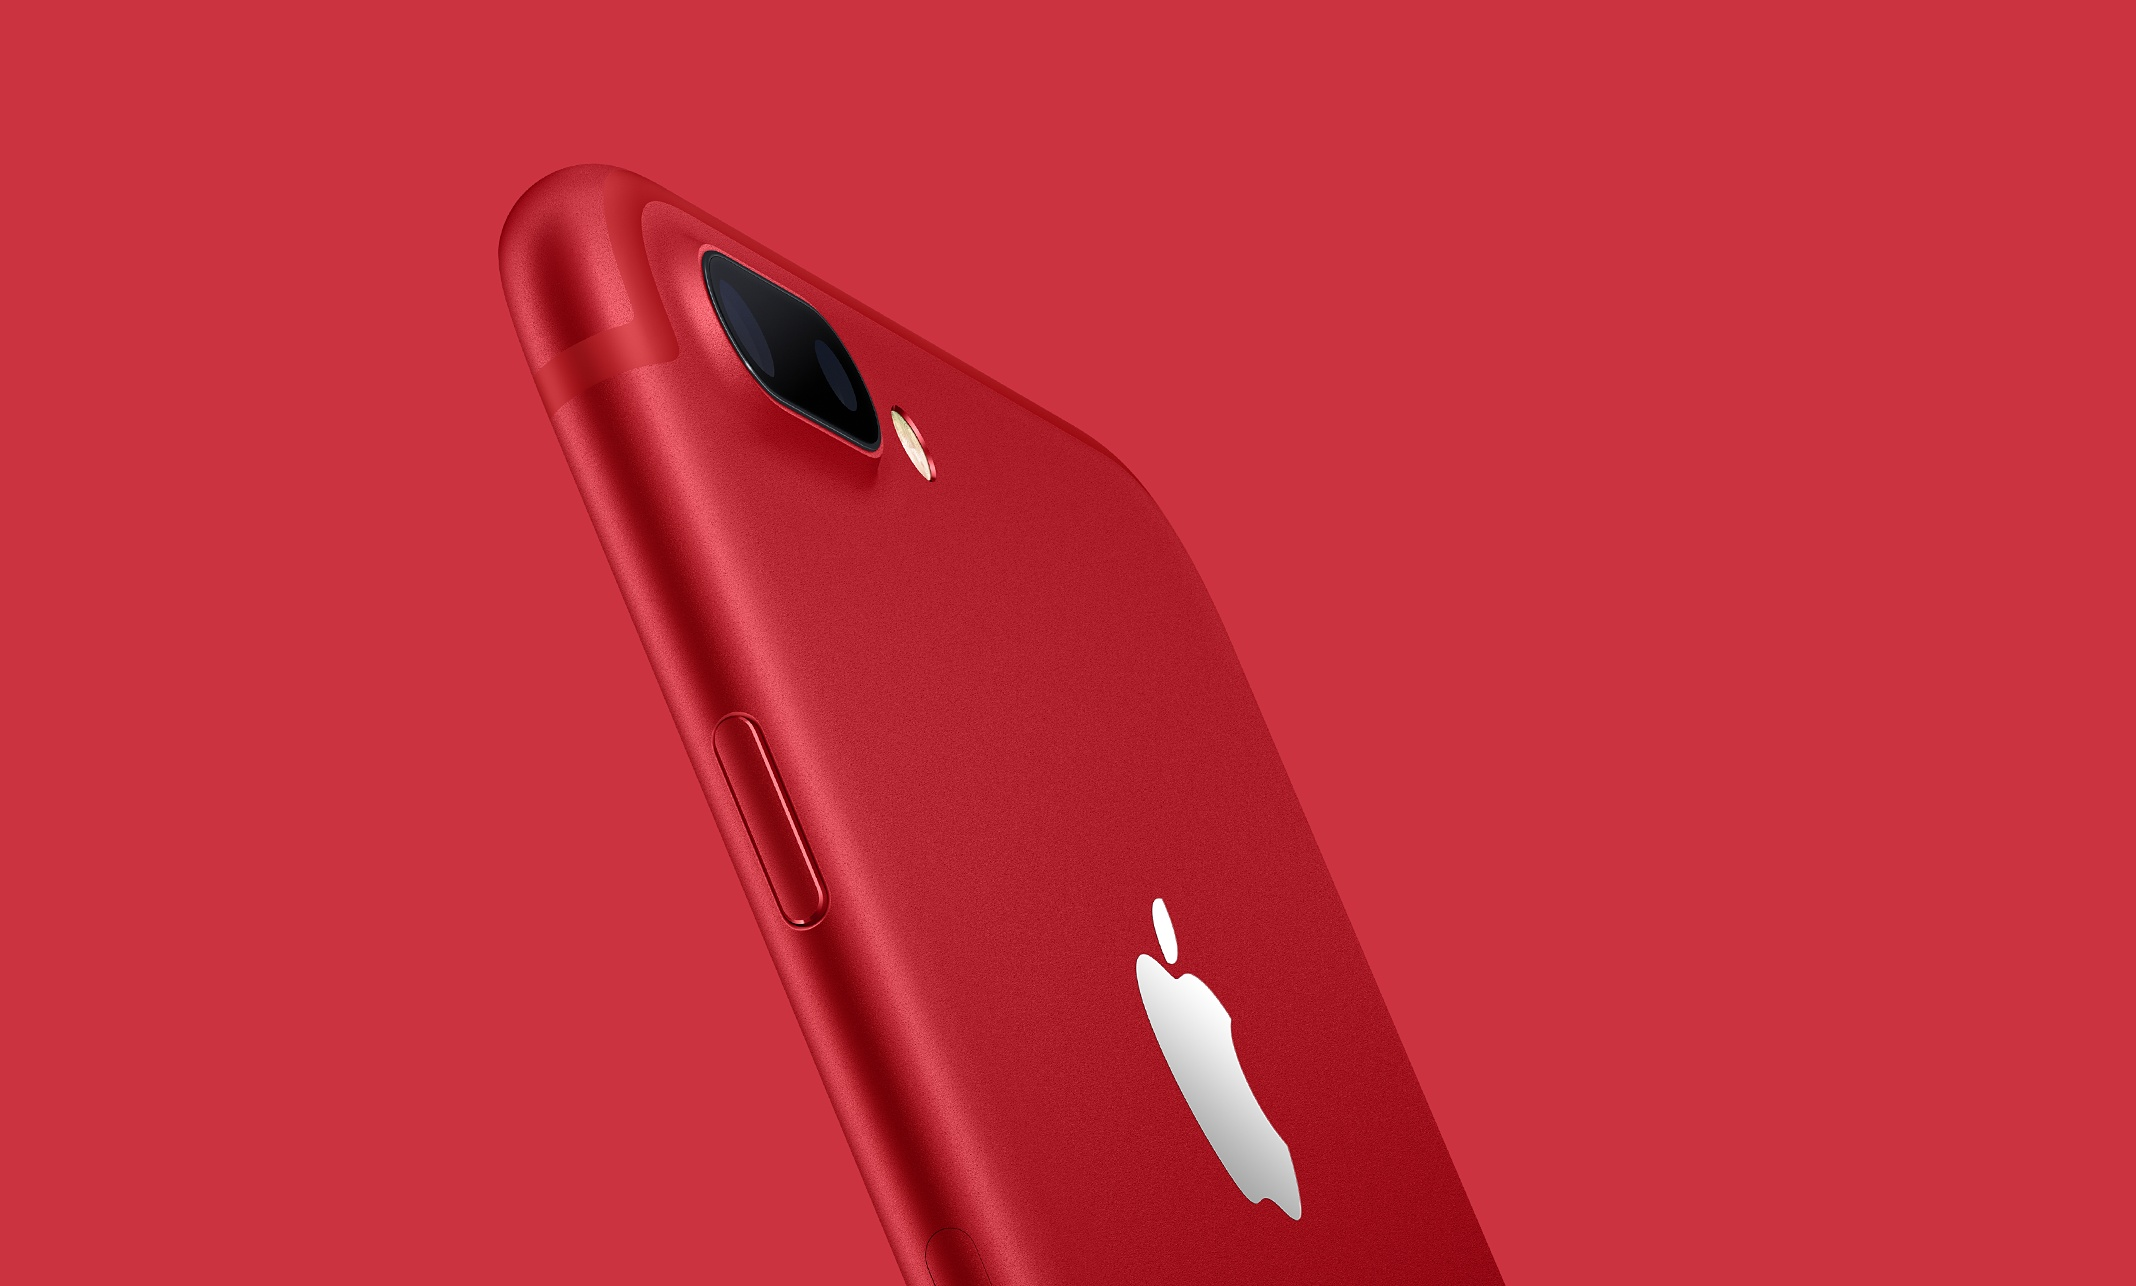 iPhone siete rojo PRODUCT(RED)